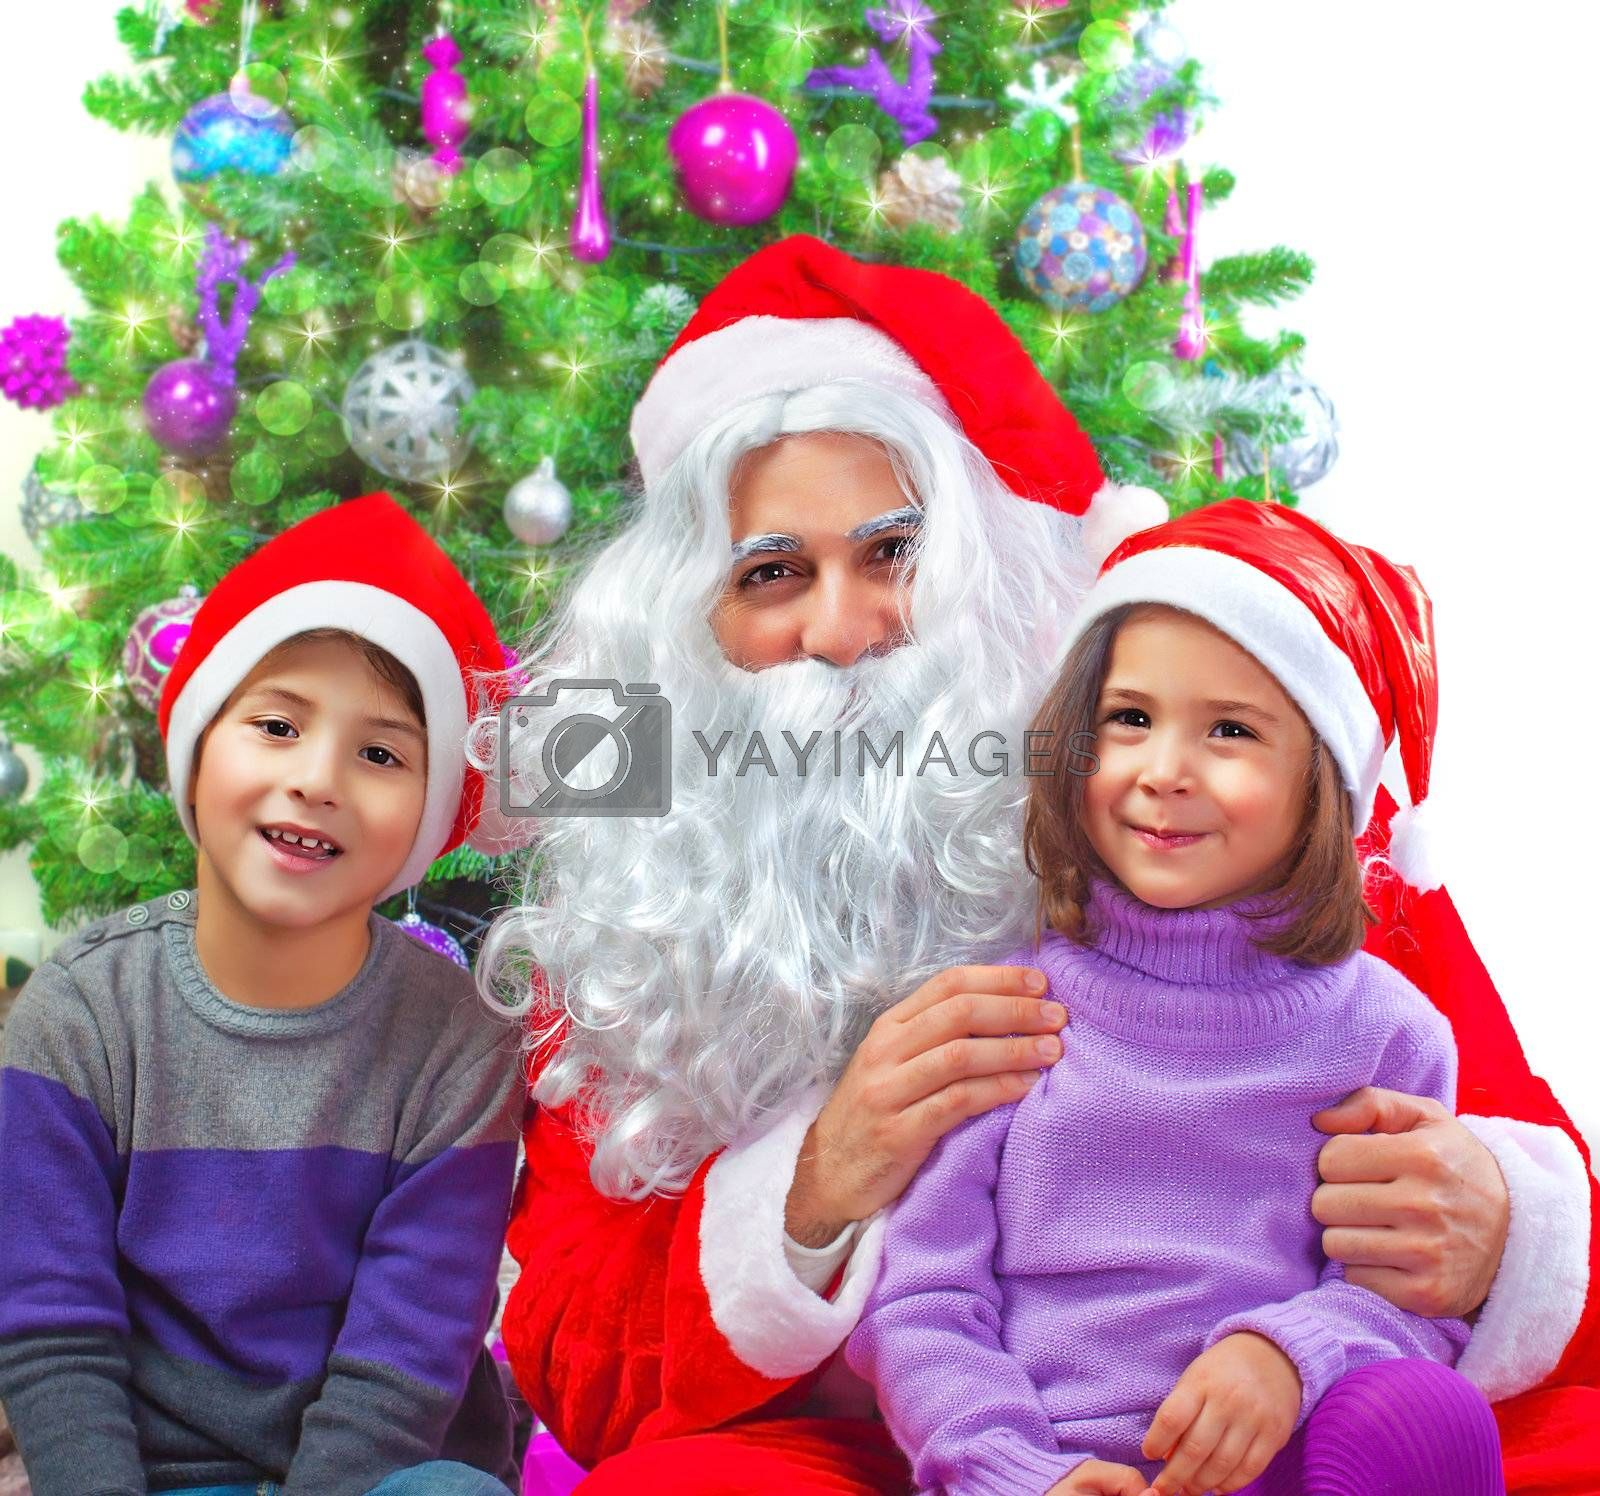 Portrait of two adorable kids sitting with Santa Claus at home near Christmas tree, winter holidays, New Year party, festive decorations, fun concept